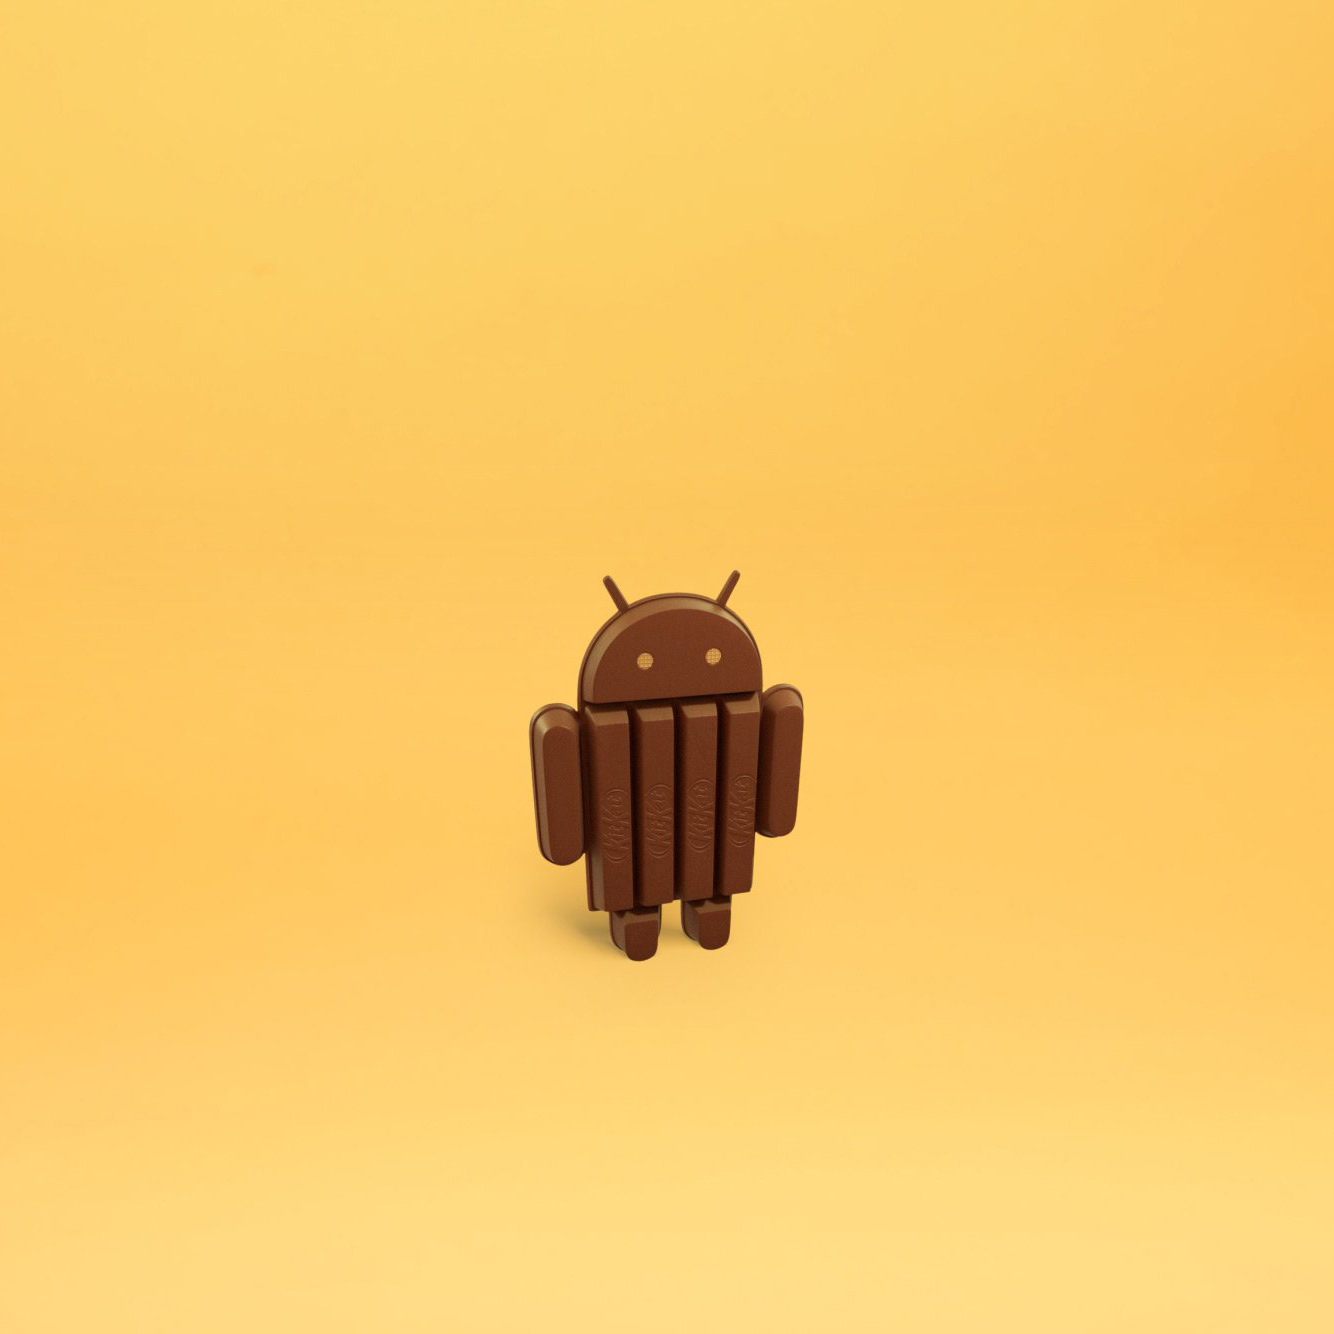 newest hd pics: Download Android KitKat Wallpaper | Paling Asik